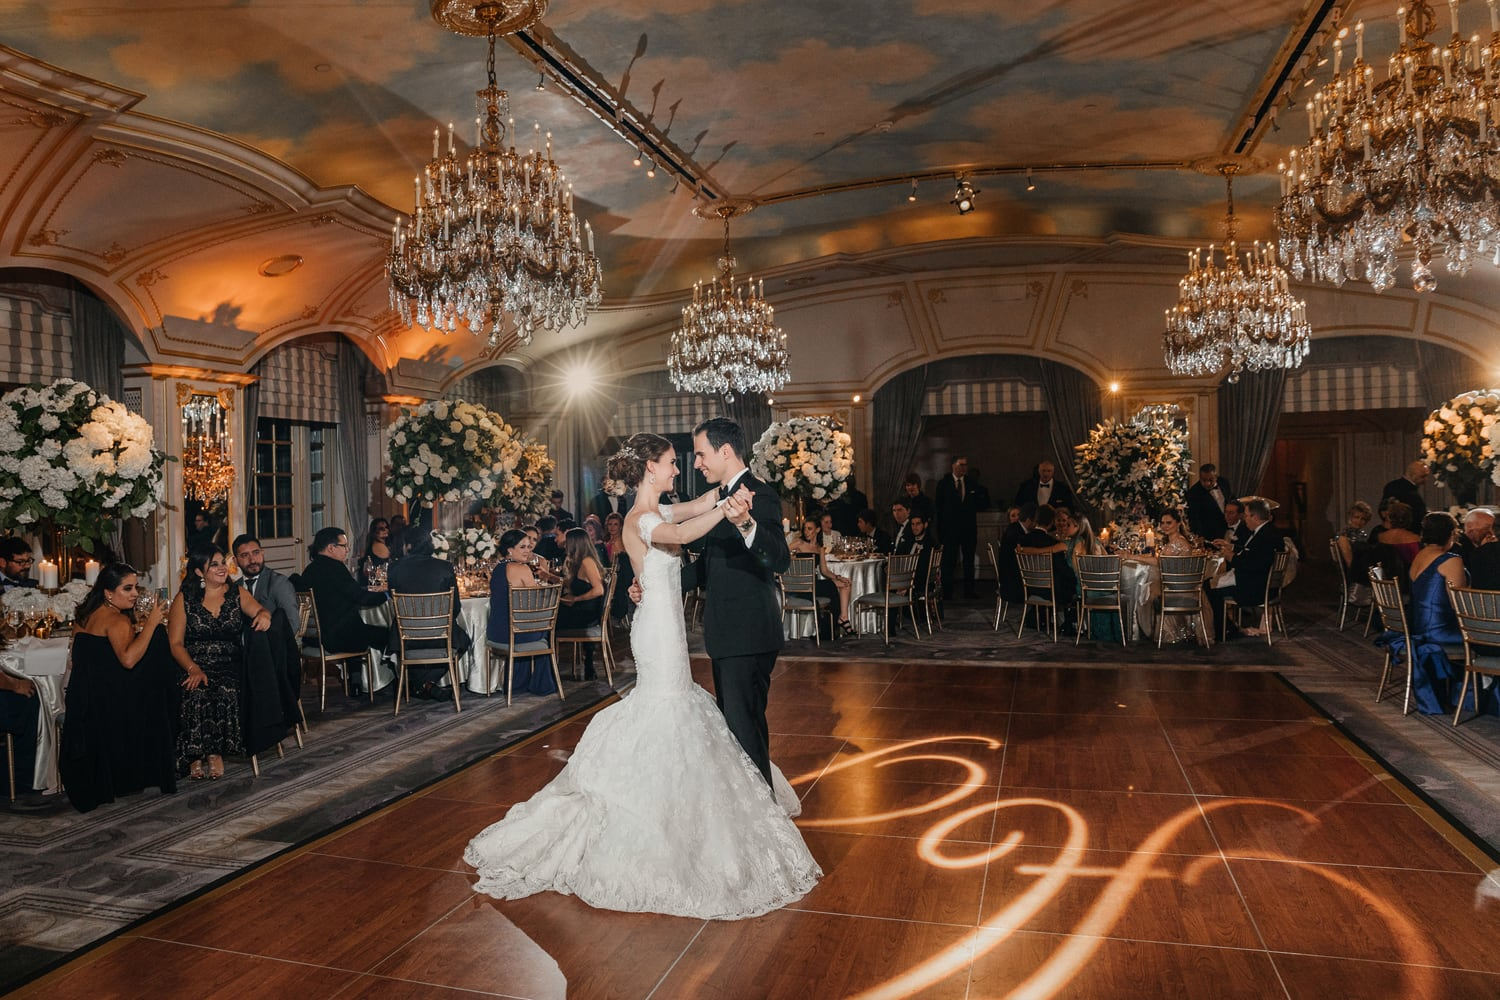 Bride and groom dancing their first dance at the St. Regis New York hotel